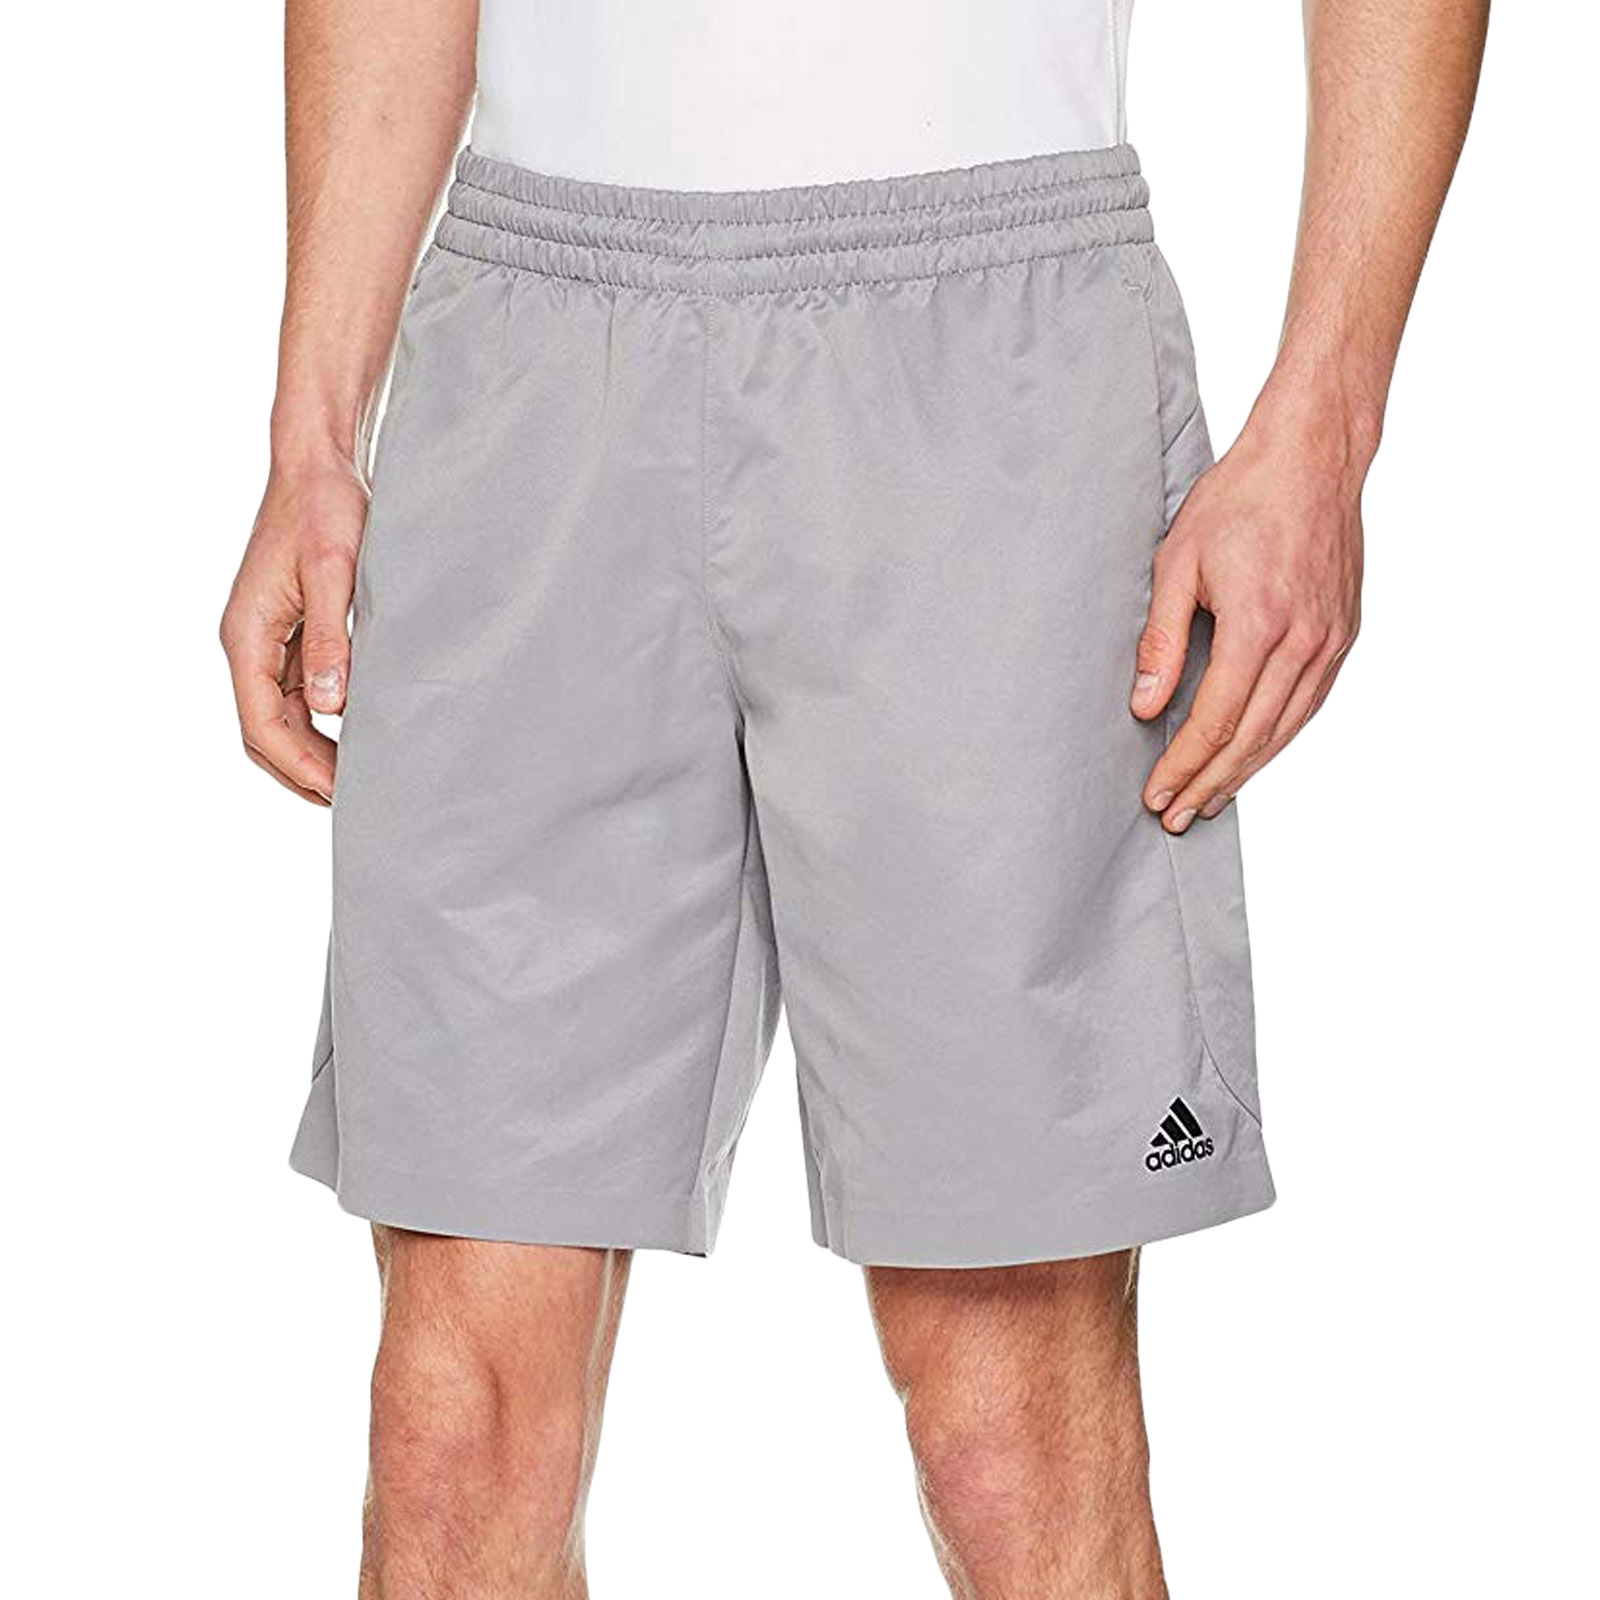 Details about adidas Performance Mens Premium ID Chelsea Football Sports Bottoms Shorts Grey